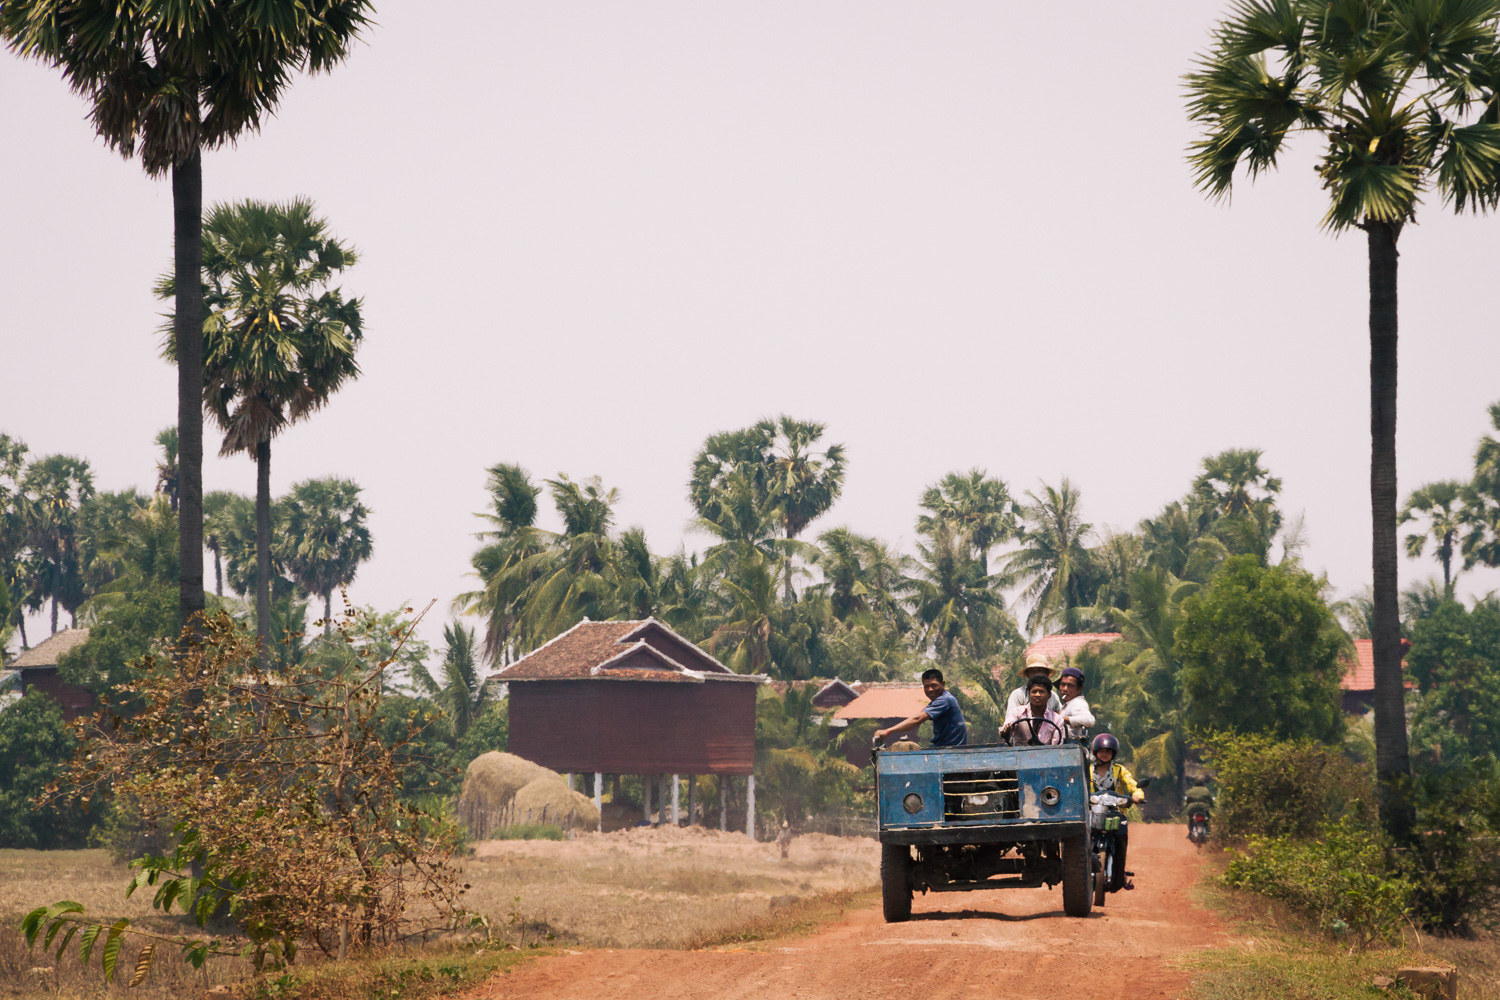 Farmers drive their truck on dirt road in Siem Reap Province, Cambodia